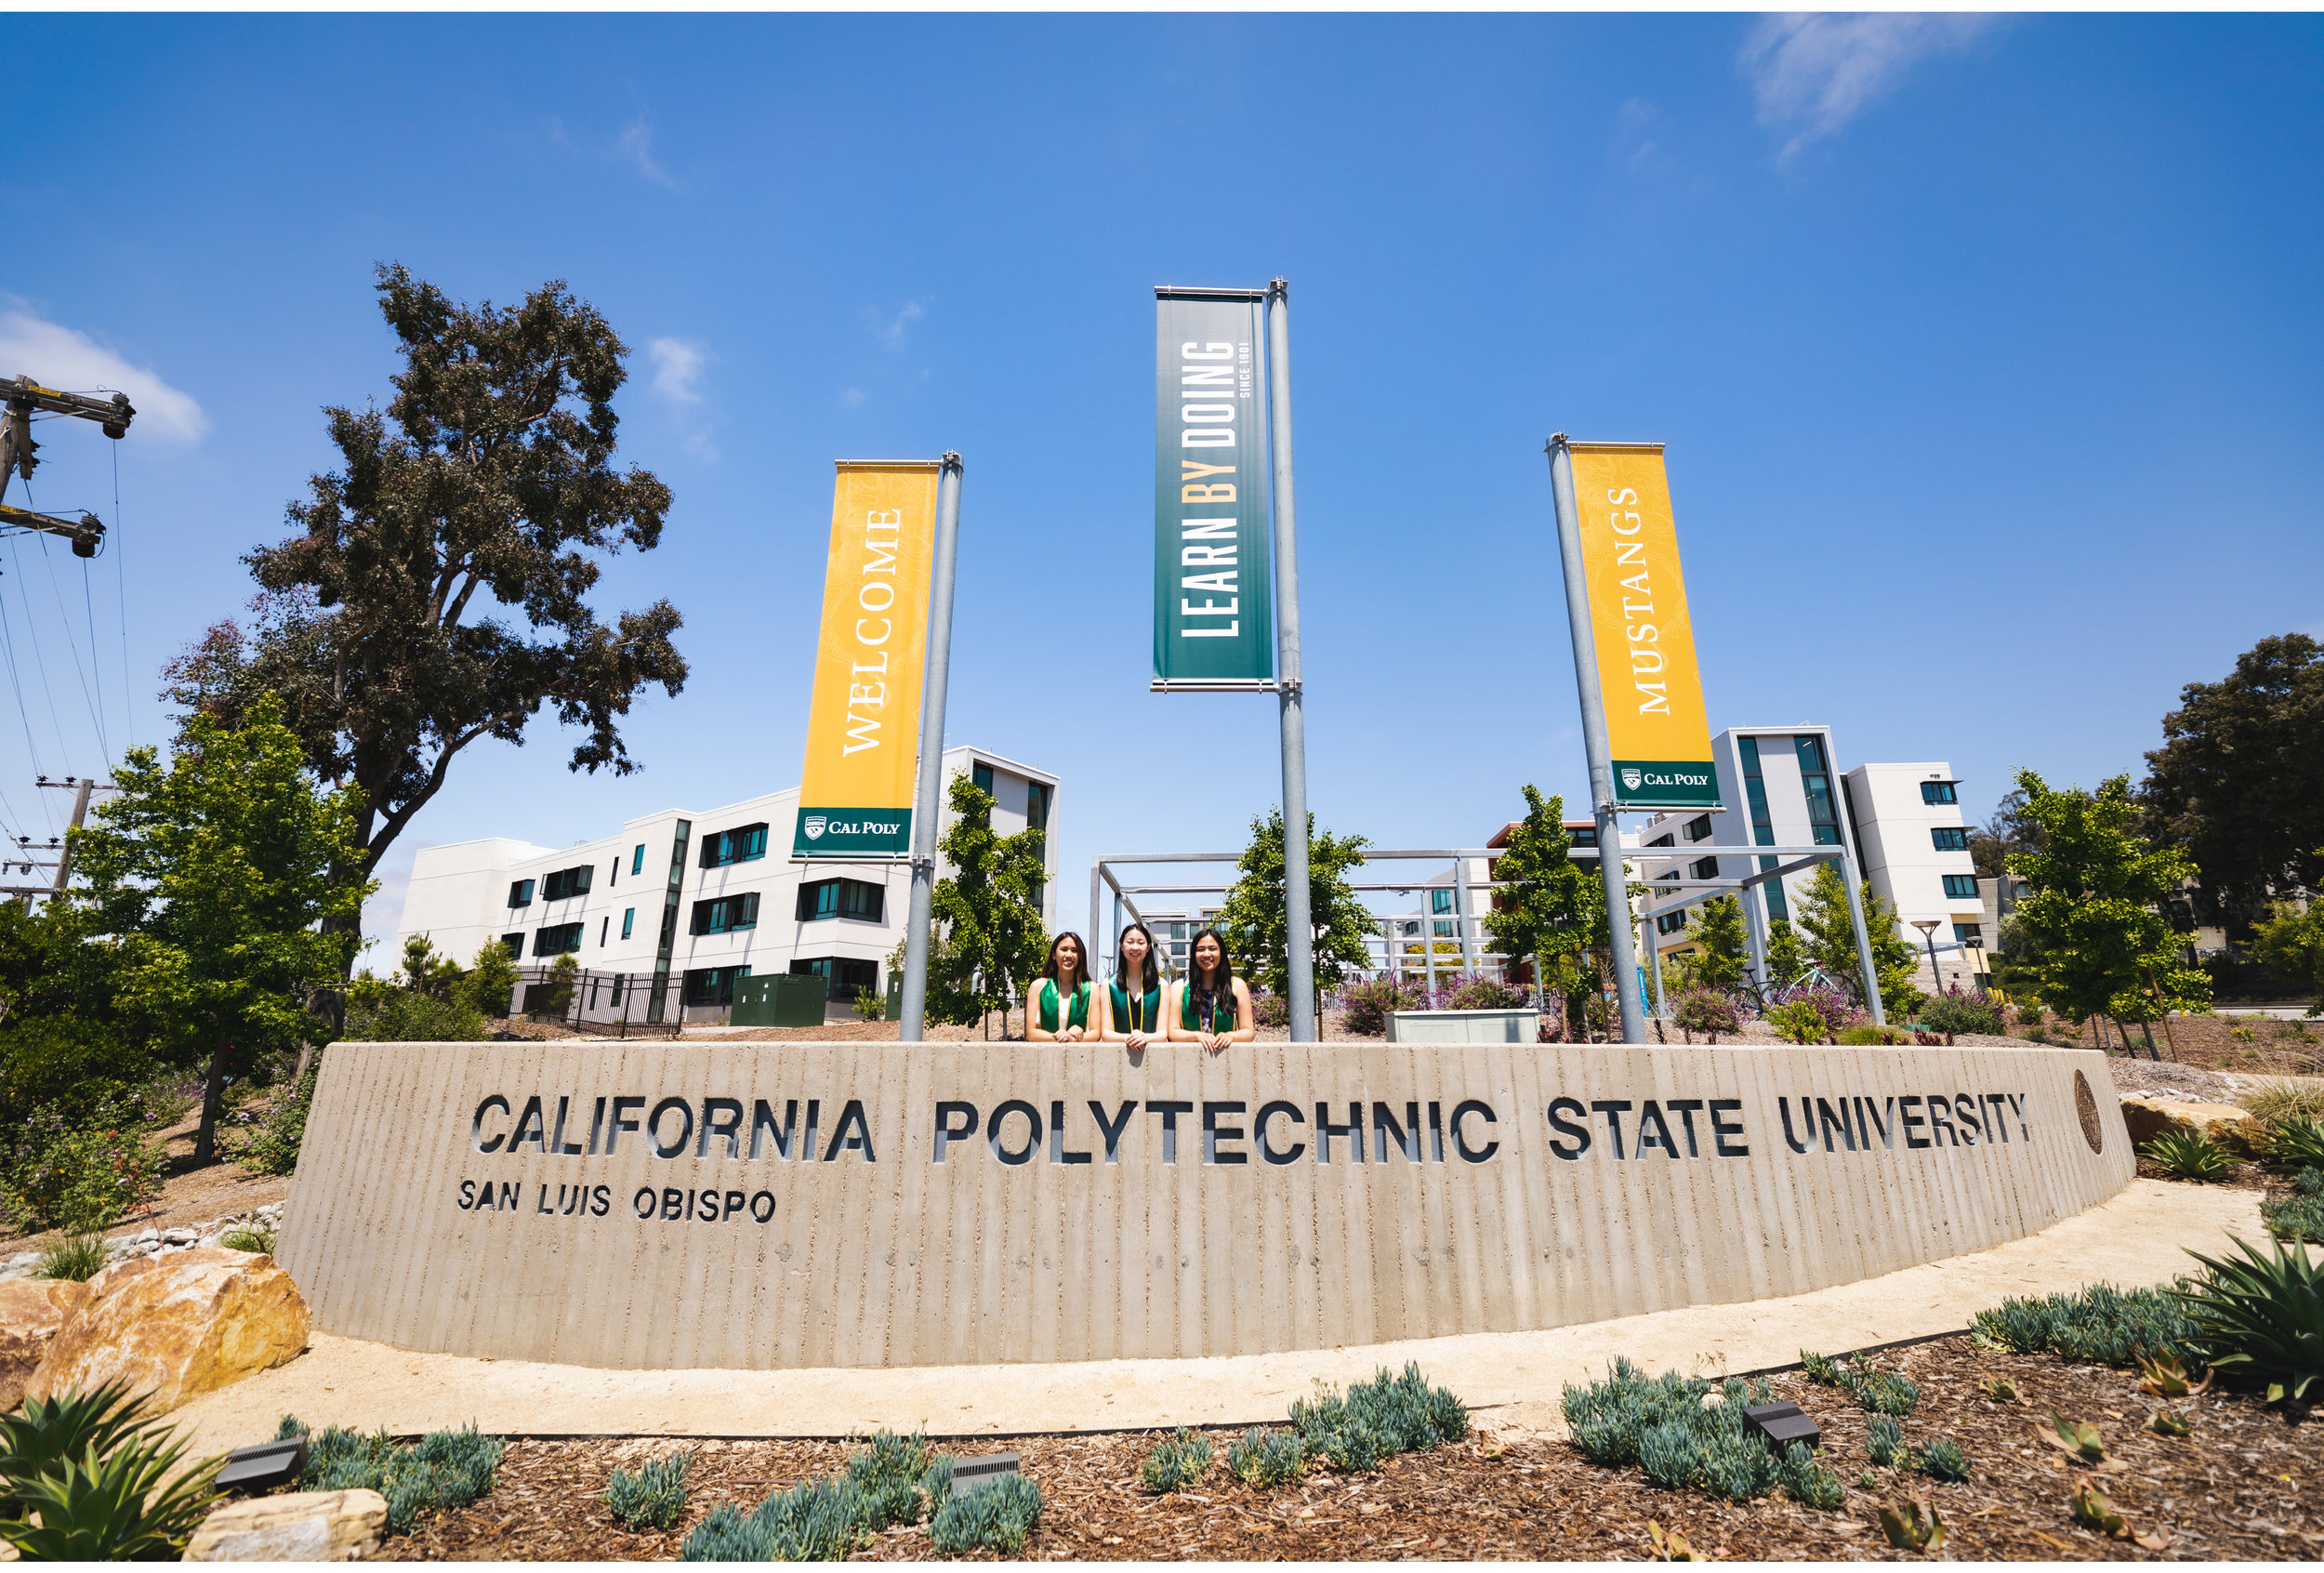 Cal Poly on Grand Sign.jpg